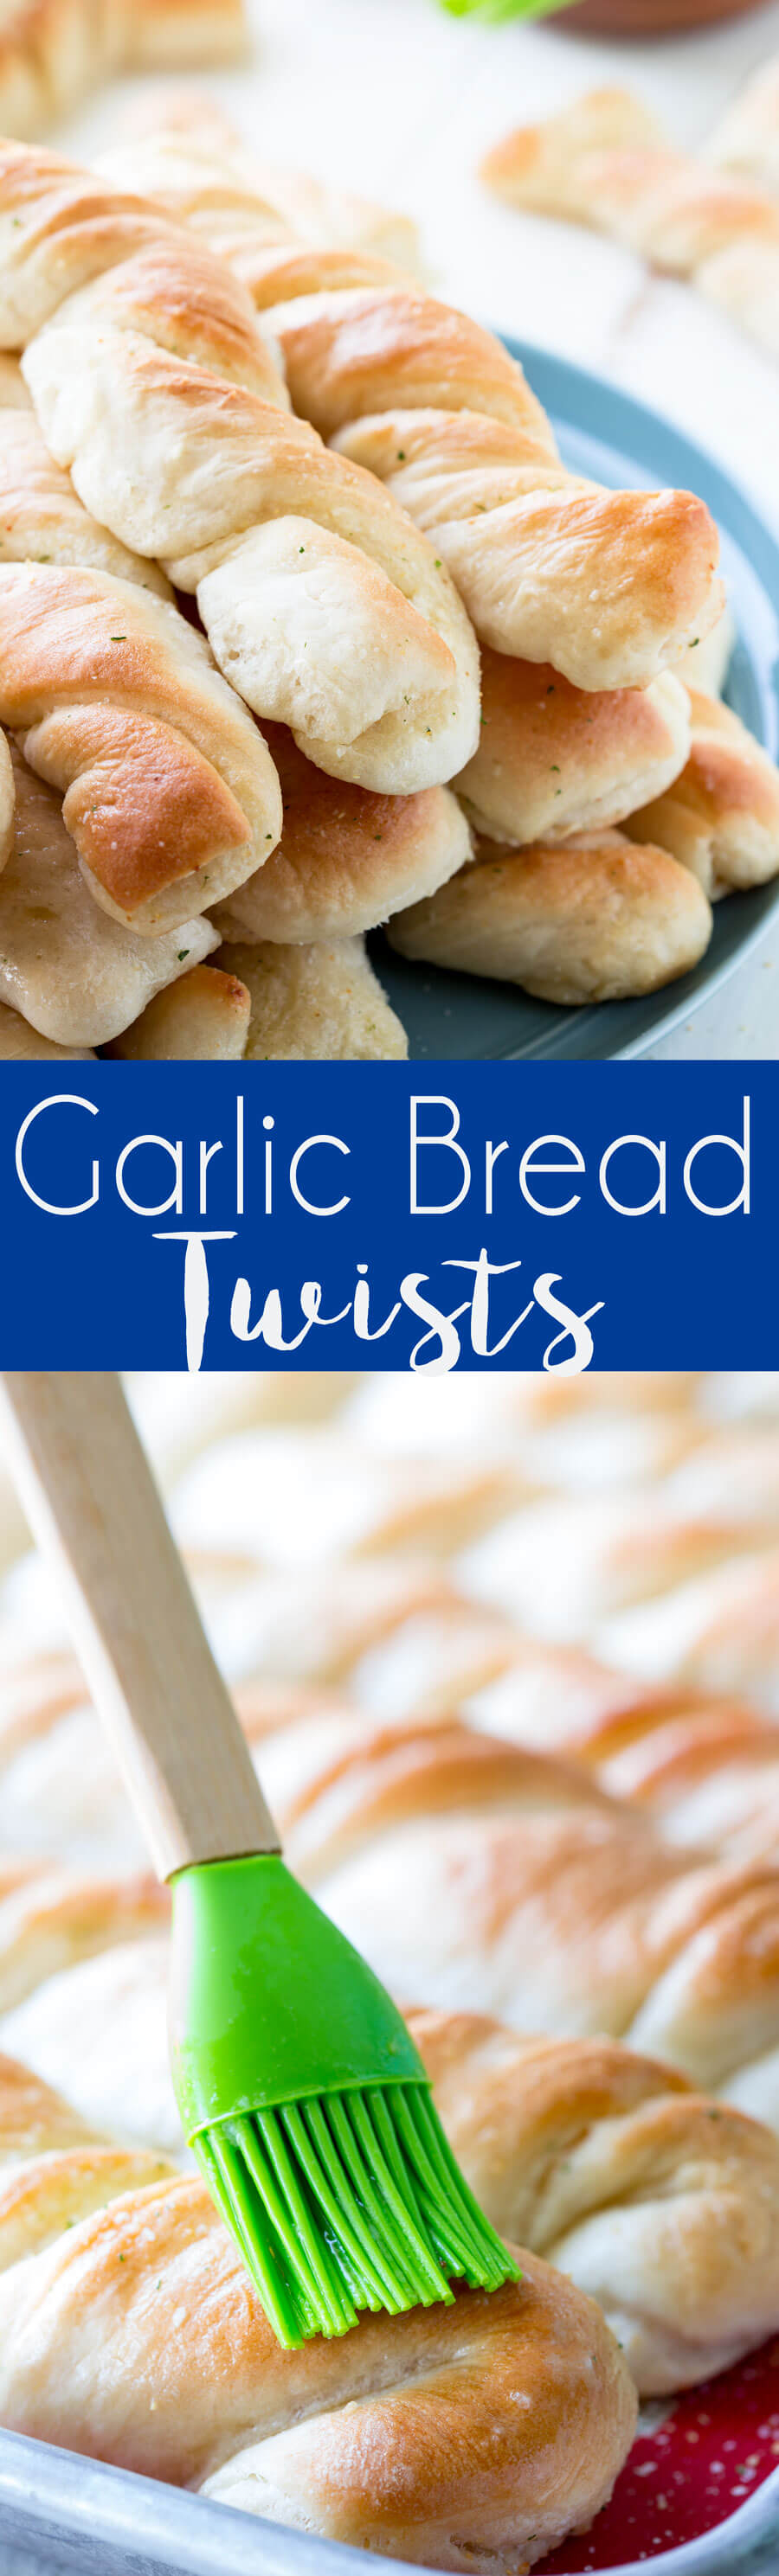 Garlic Bread Recipe: This easy to make garlic bread recipe makes 20-30 buttery, garlicky, and absolutely delicious garlic bread twists in under and hour.